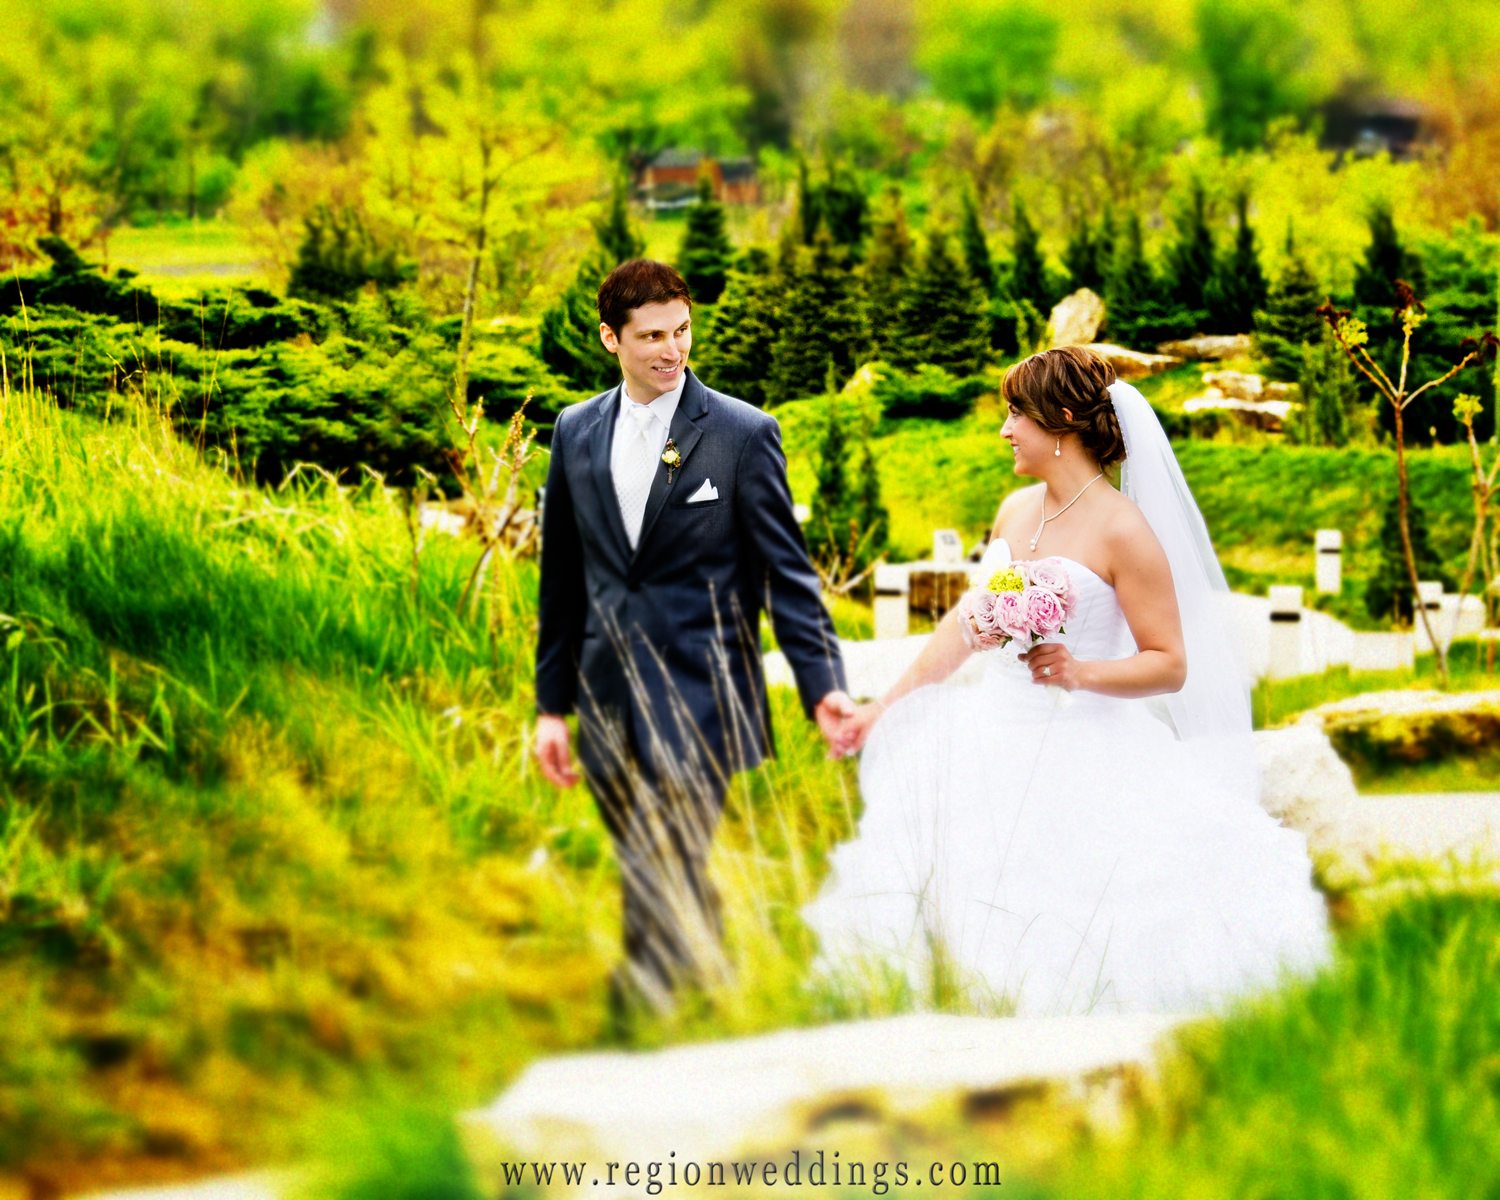 Newly married couple walks among the greenery at The Shrine of Christ's Passion in Saint John, Indiana.